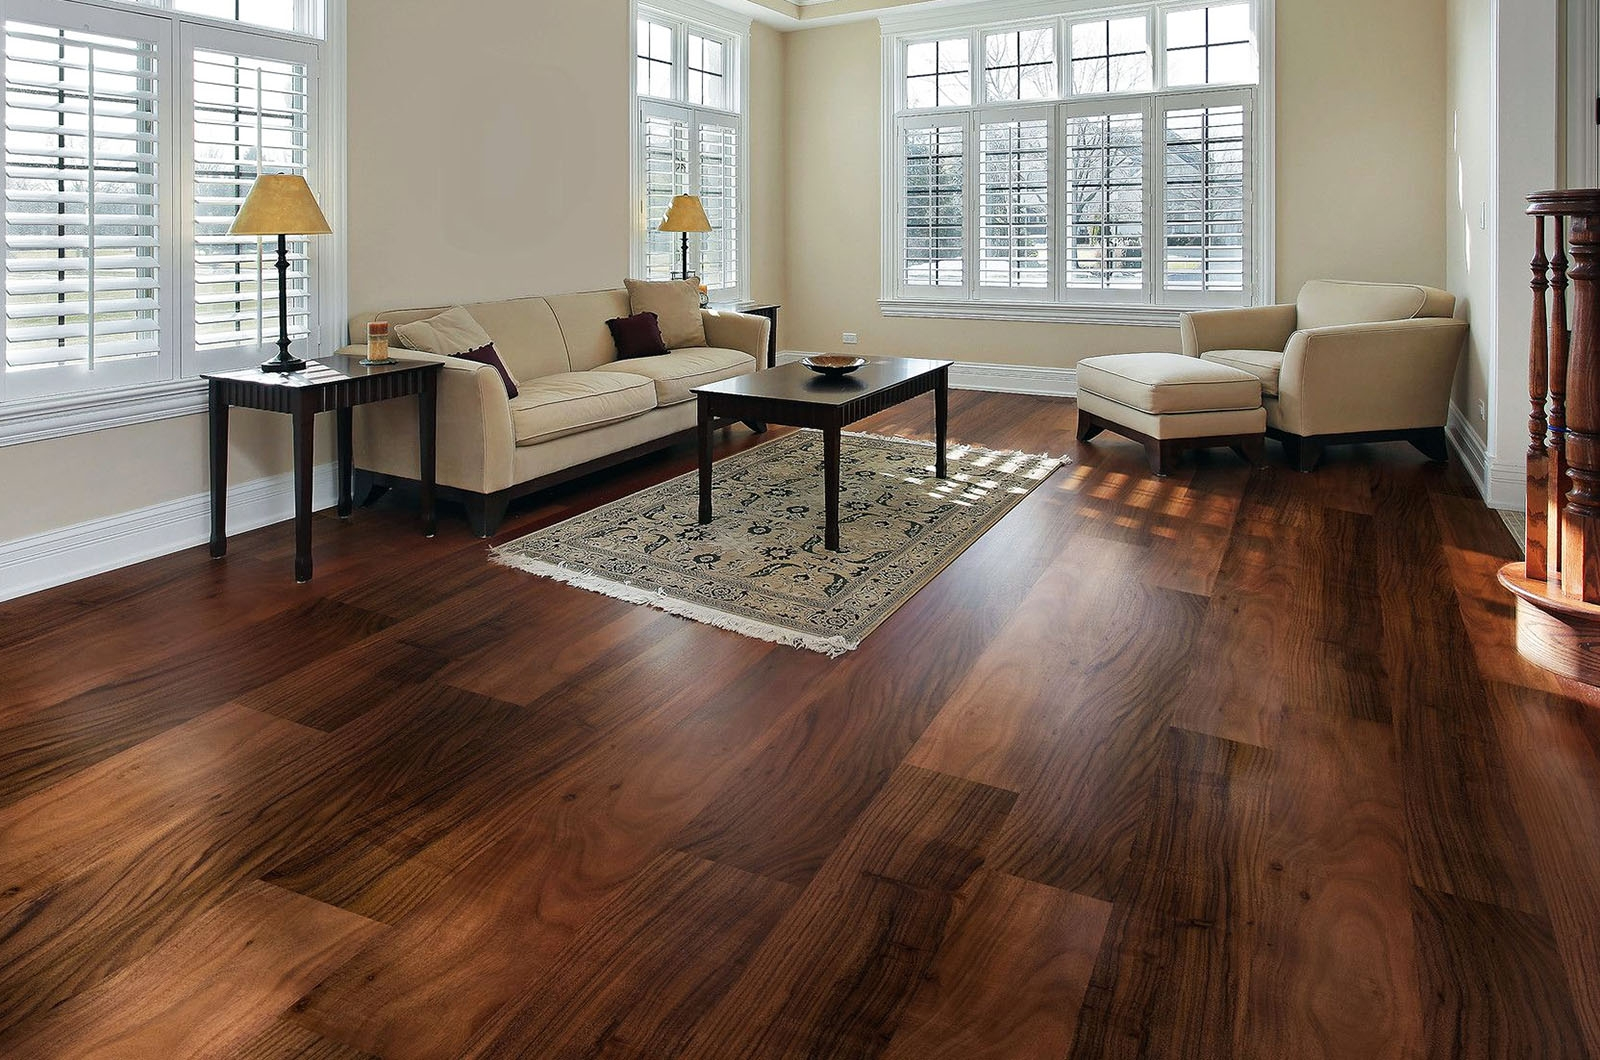 Hardwood flooring reviews - Pros and Cons - Brands and costs